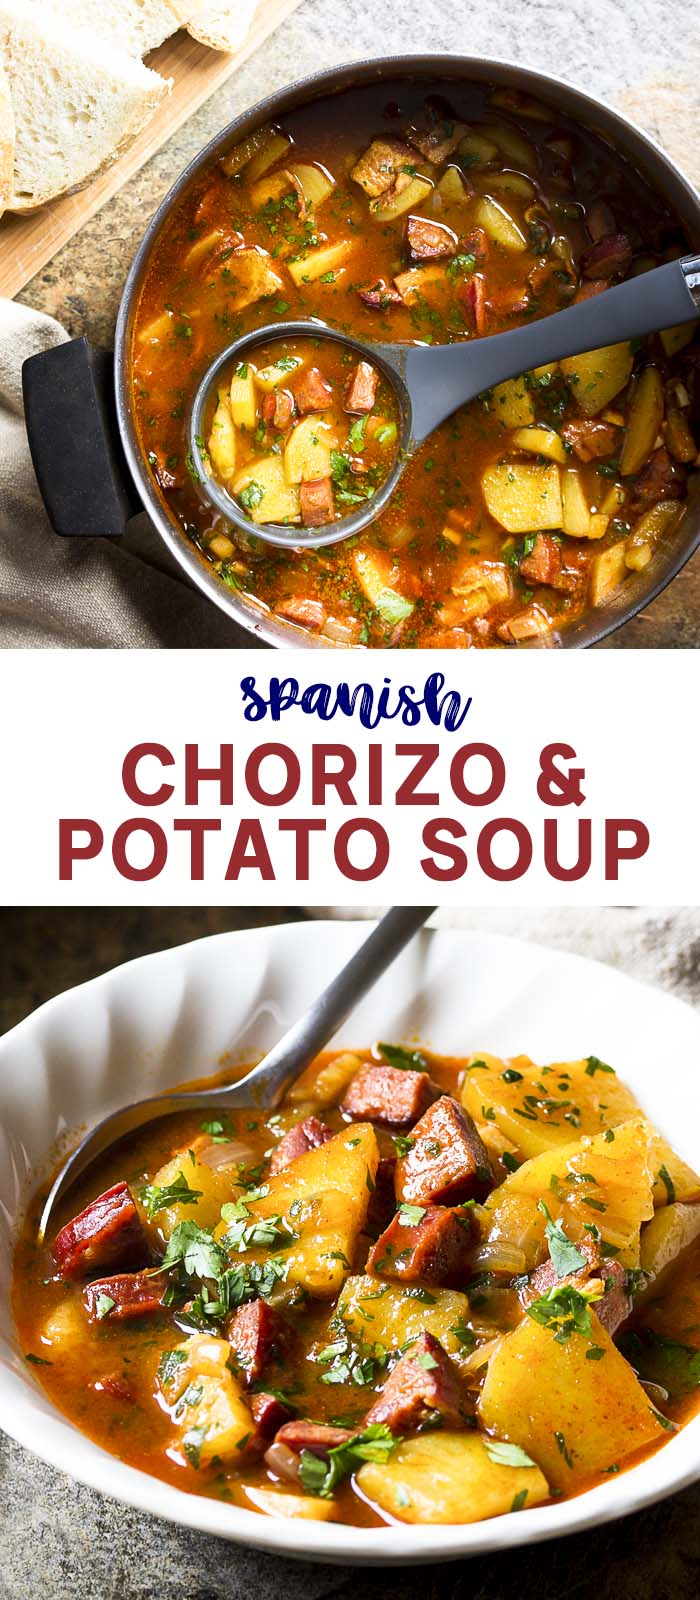 A pot and a bowl of Spanish soup with text overlay - Chorizo and Potato Soup.